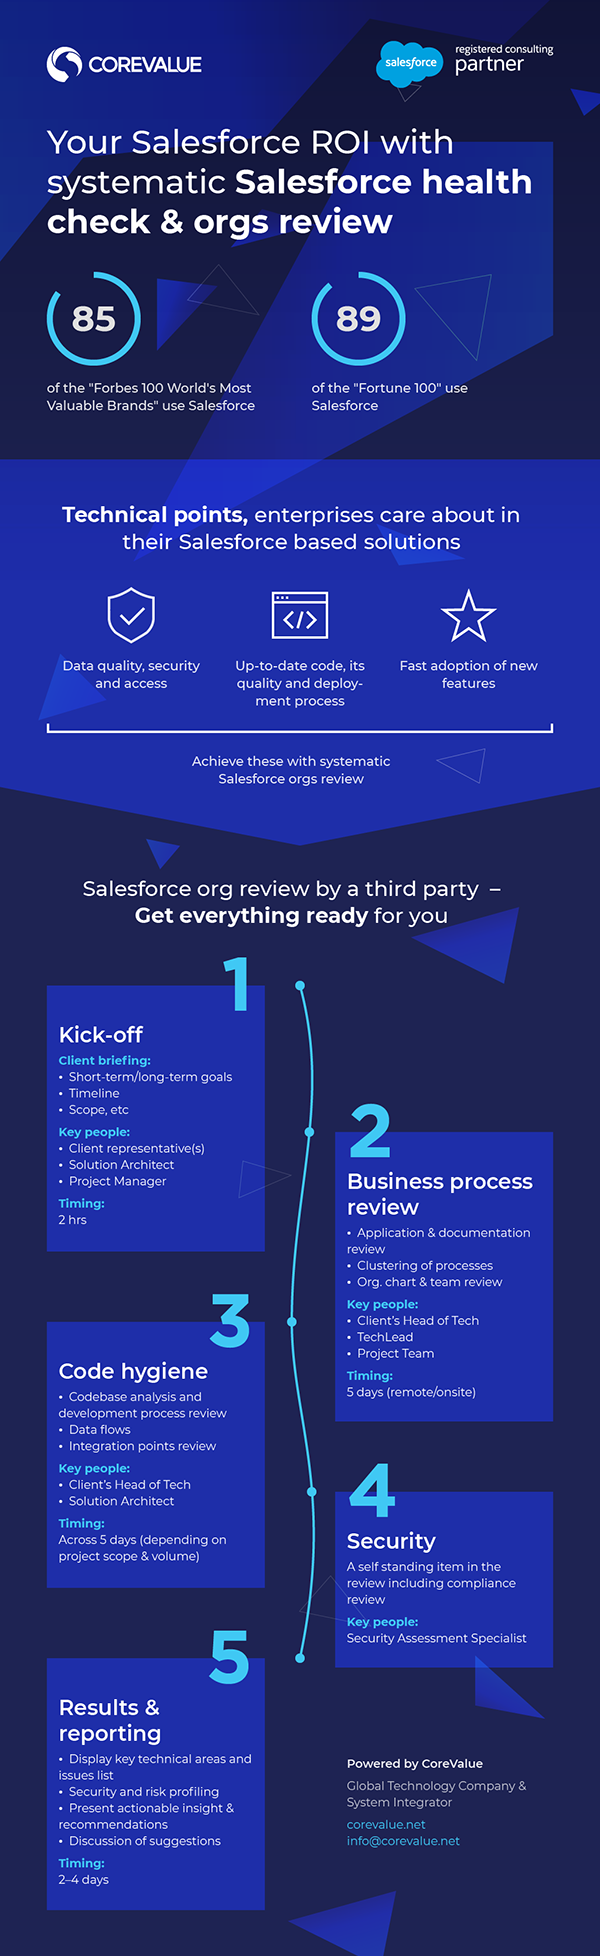 Your Salesforce ROI with systematic Salesforce health check and review